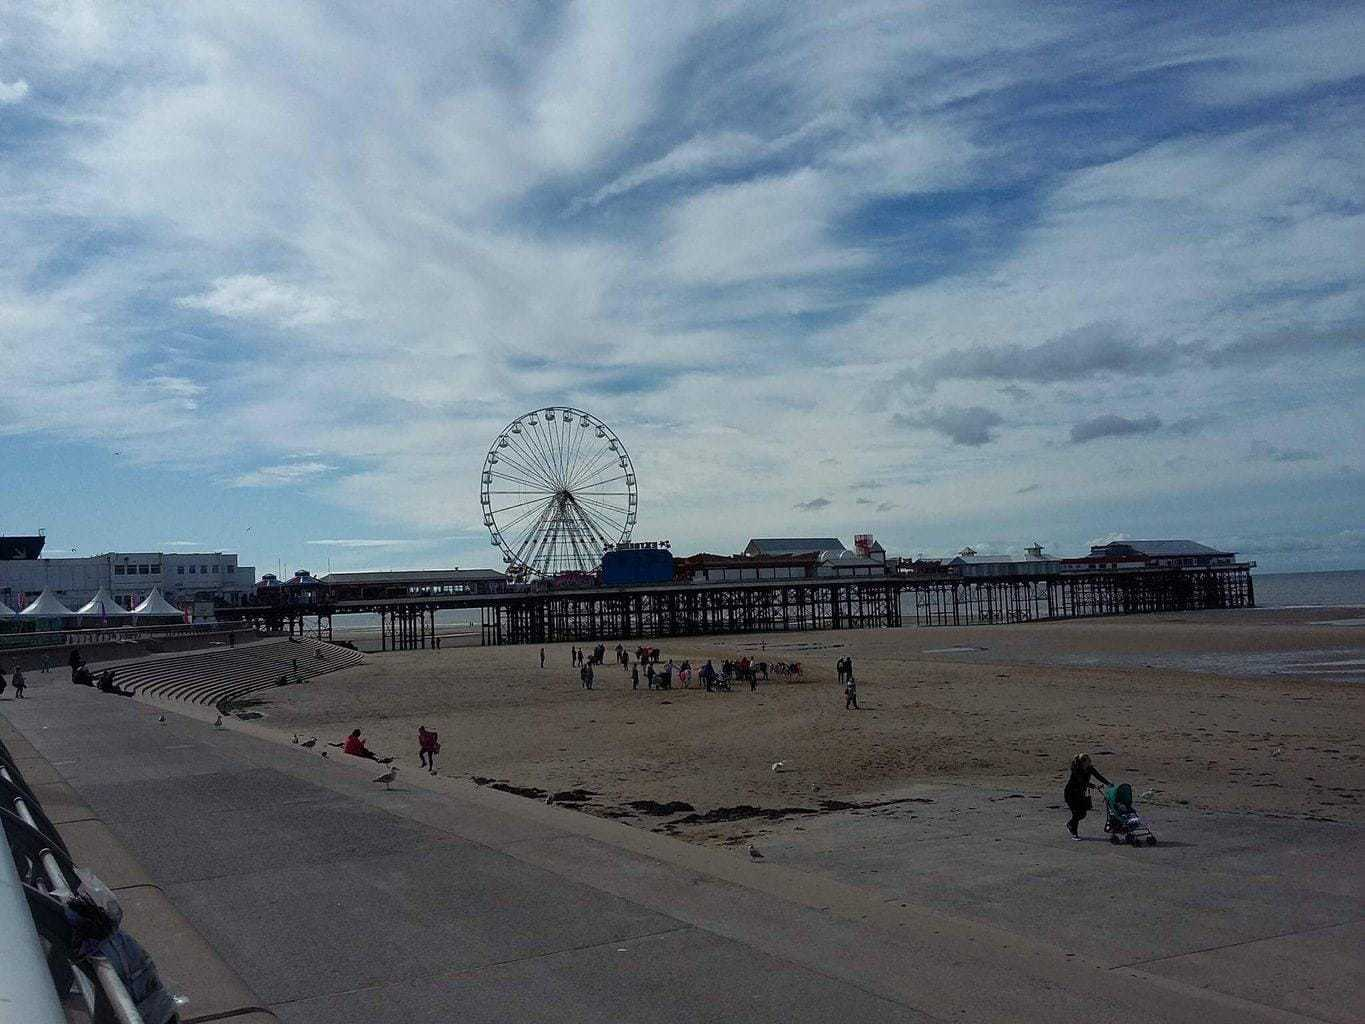 Blackpool Review - The Family Friendly Destination